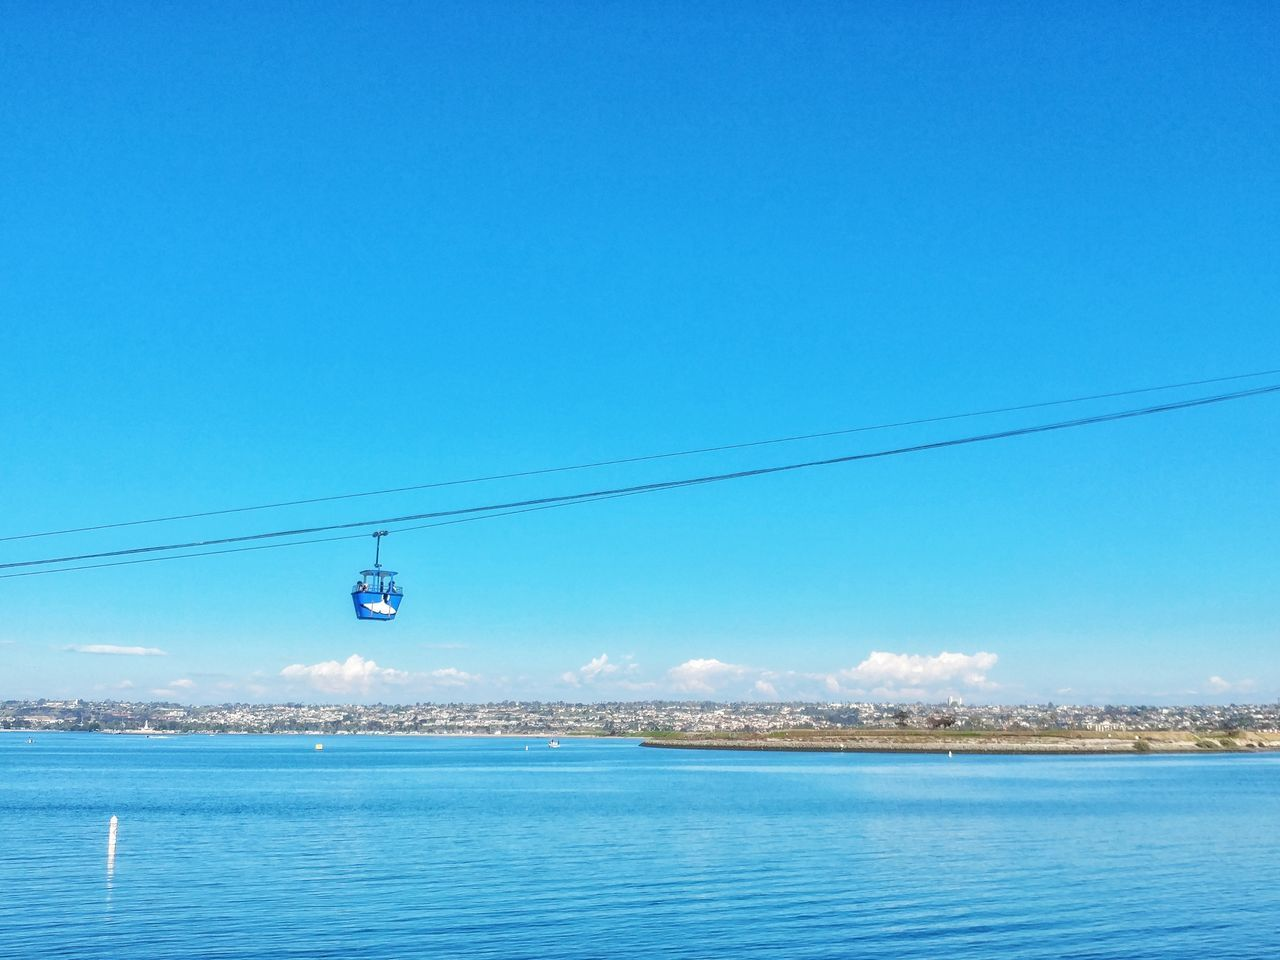 USA Photos Blue Water Sea Clear Sky Waterfront Outdoors No People NatureTravel Clouds And Sky Beauty In Nature Day Beauty In Nature Sky Cable Car Cable Car View LG V20 Streamzoofamily Streamzoofamily Friends